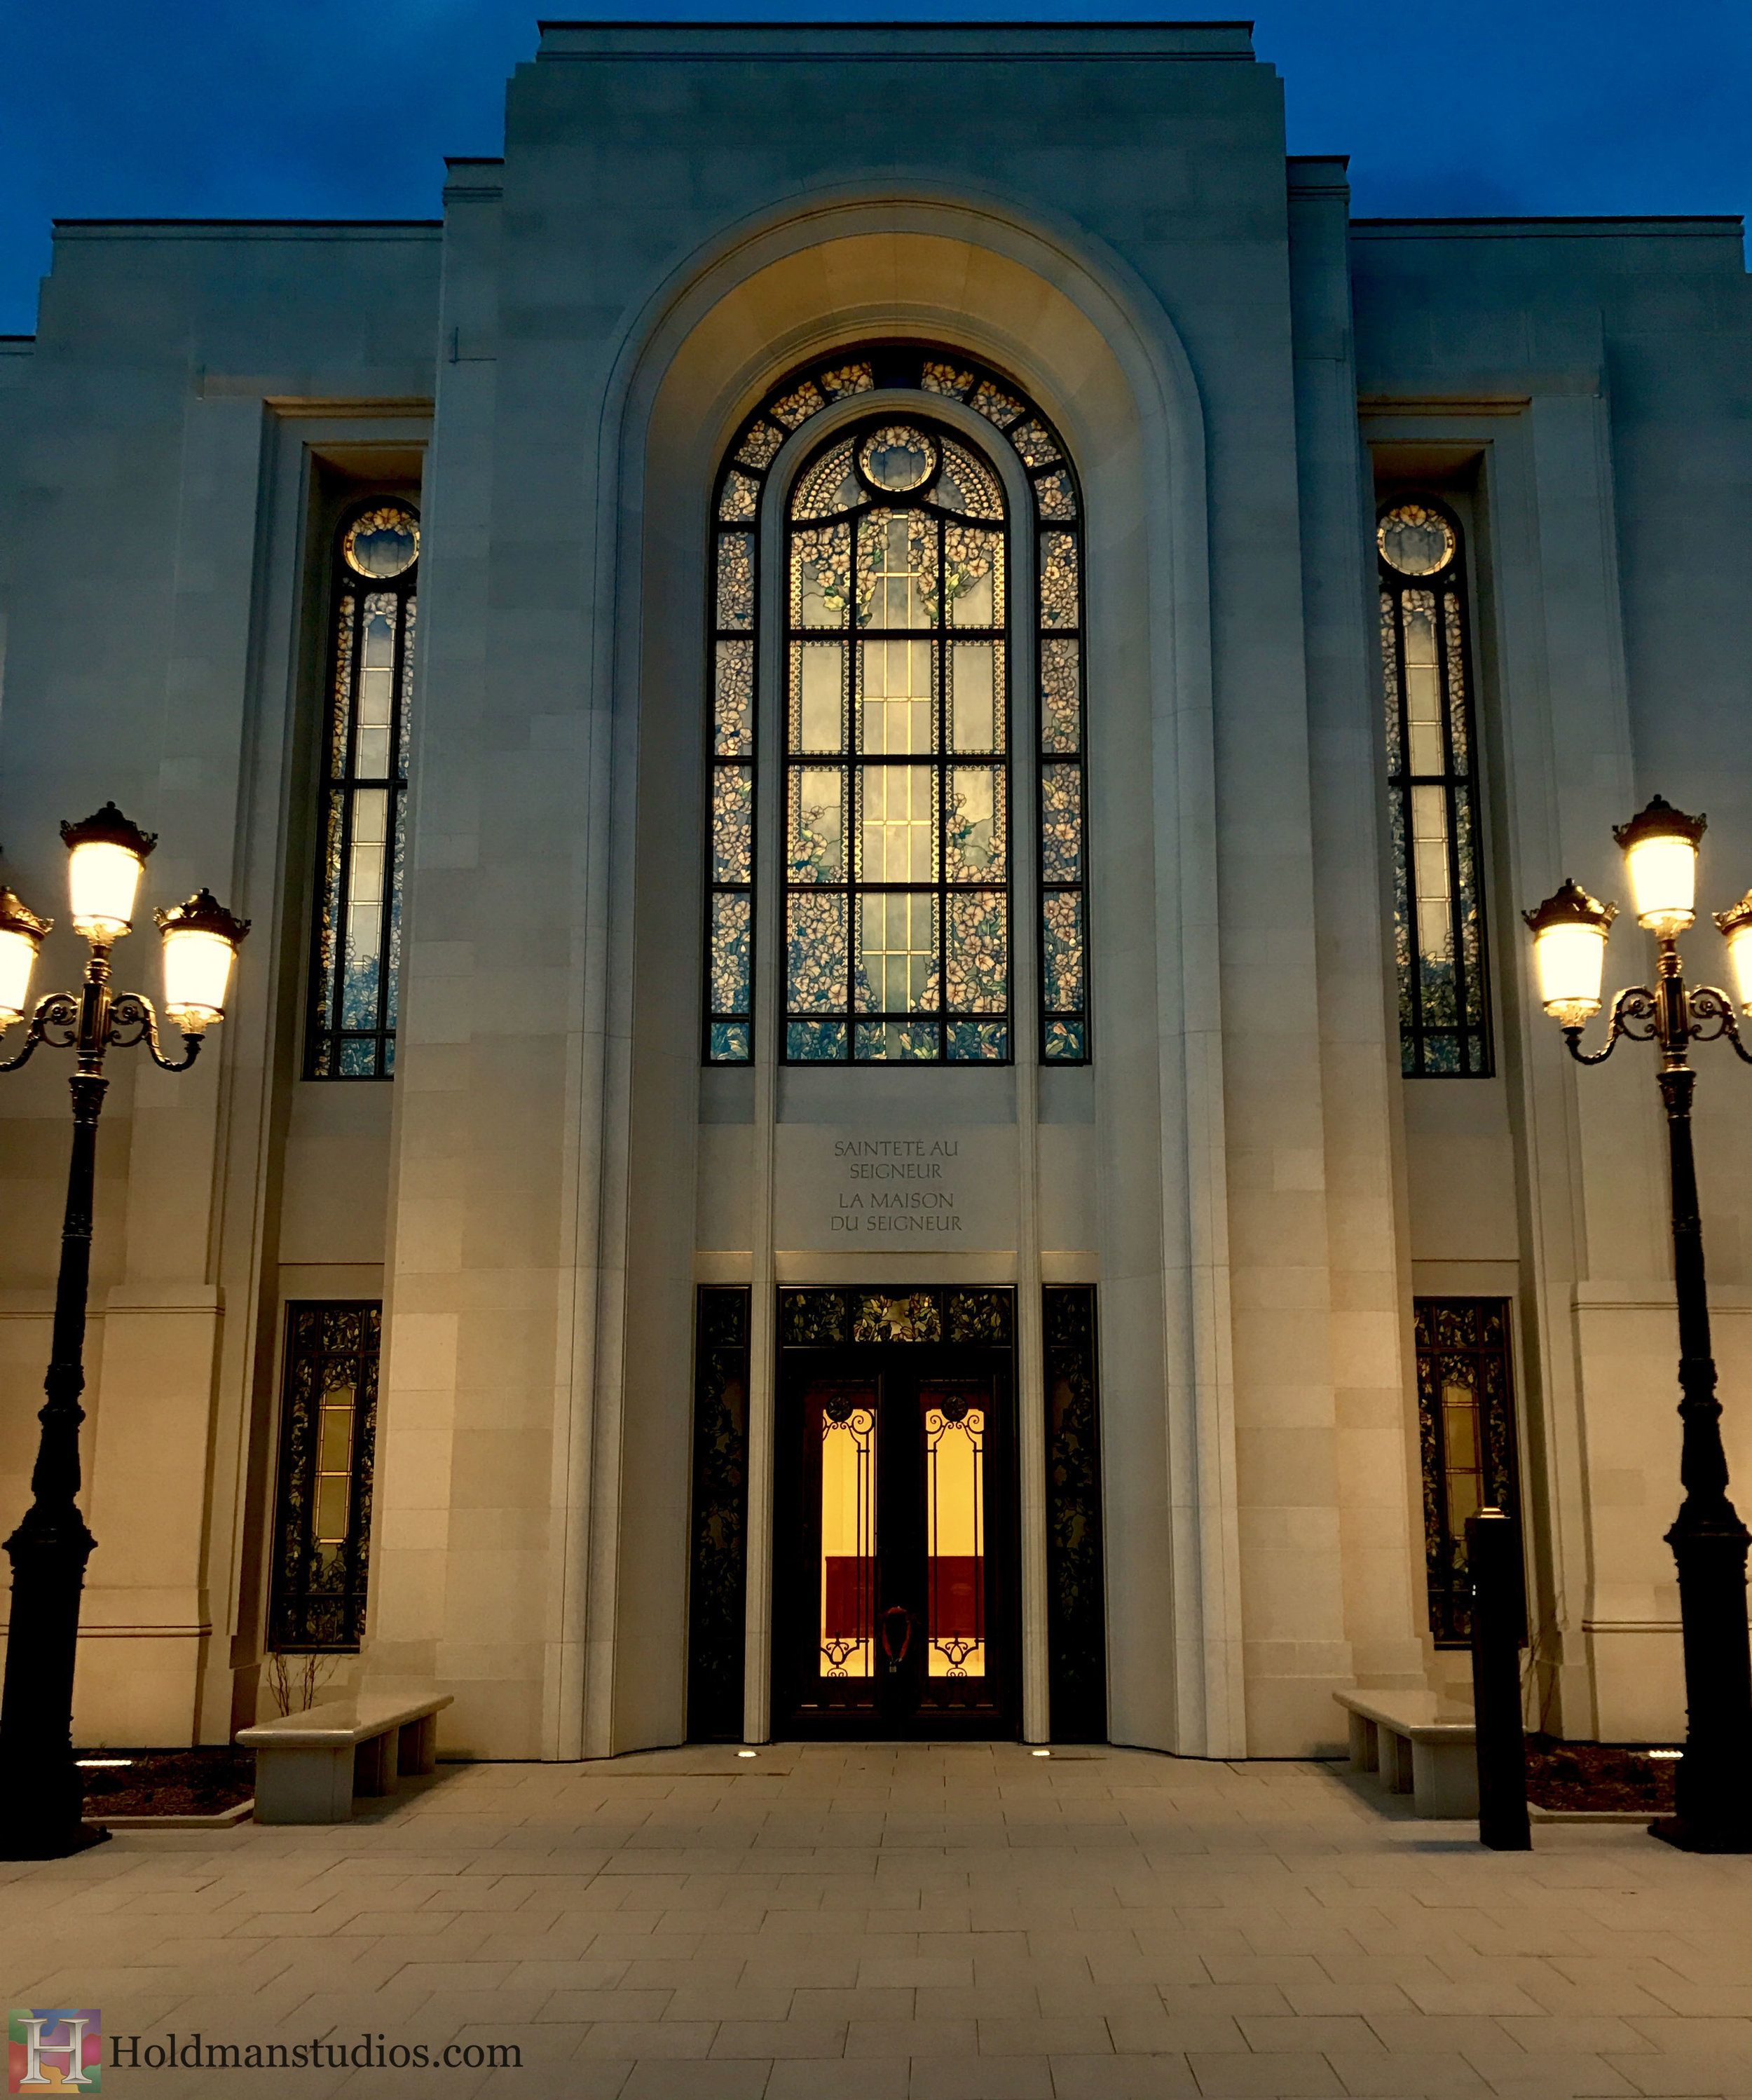 Holdman-Studios-Stained-Etched-Glass-Paris-LDS-Temple-Madonna-Lily-Flowers-Exterior-Entrance-Windows-Nightview.jpg